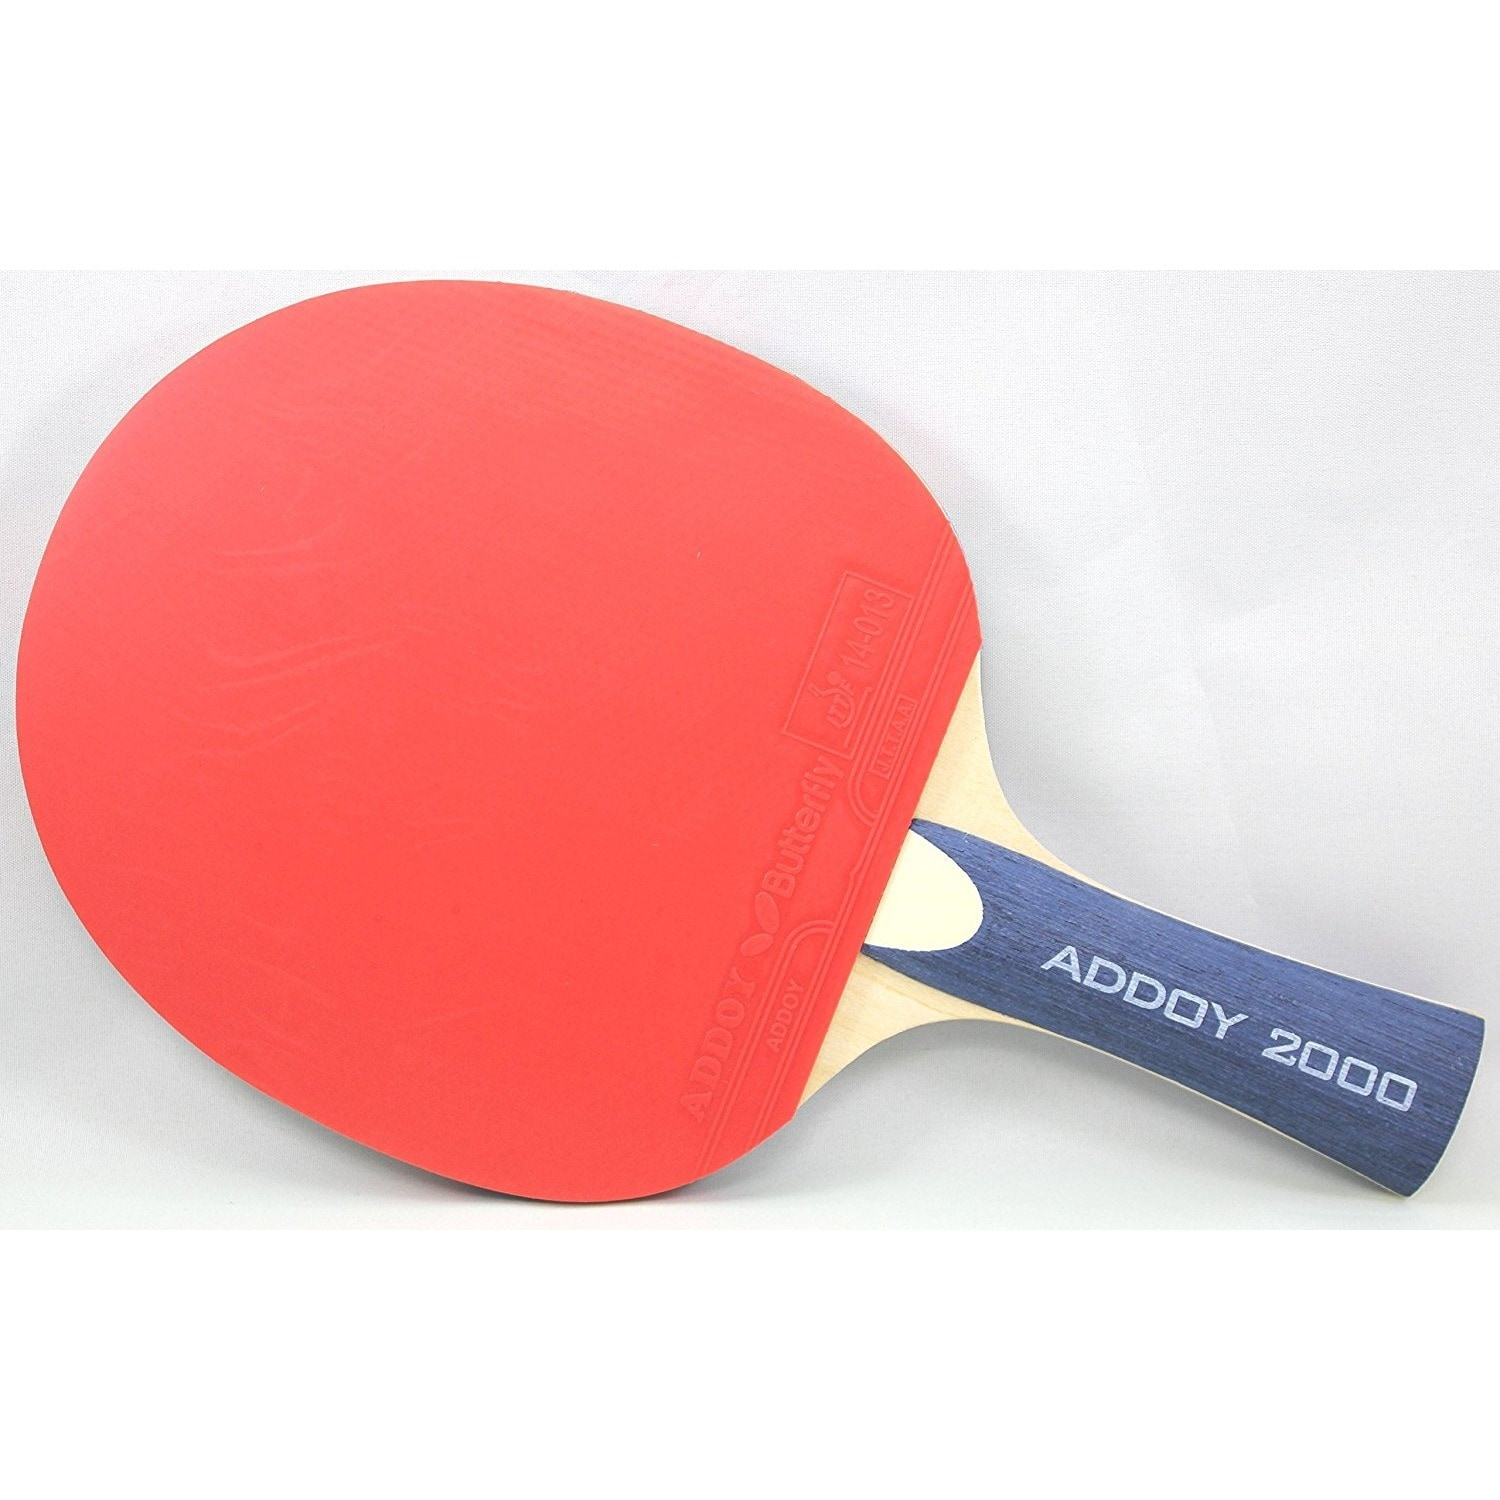 sports butterfly product orders shipping sponge free over on addoy tennis and racket overstock table ittf approved rubber toys